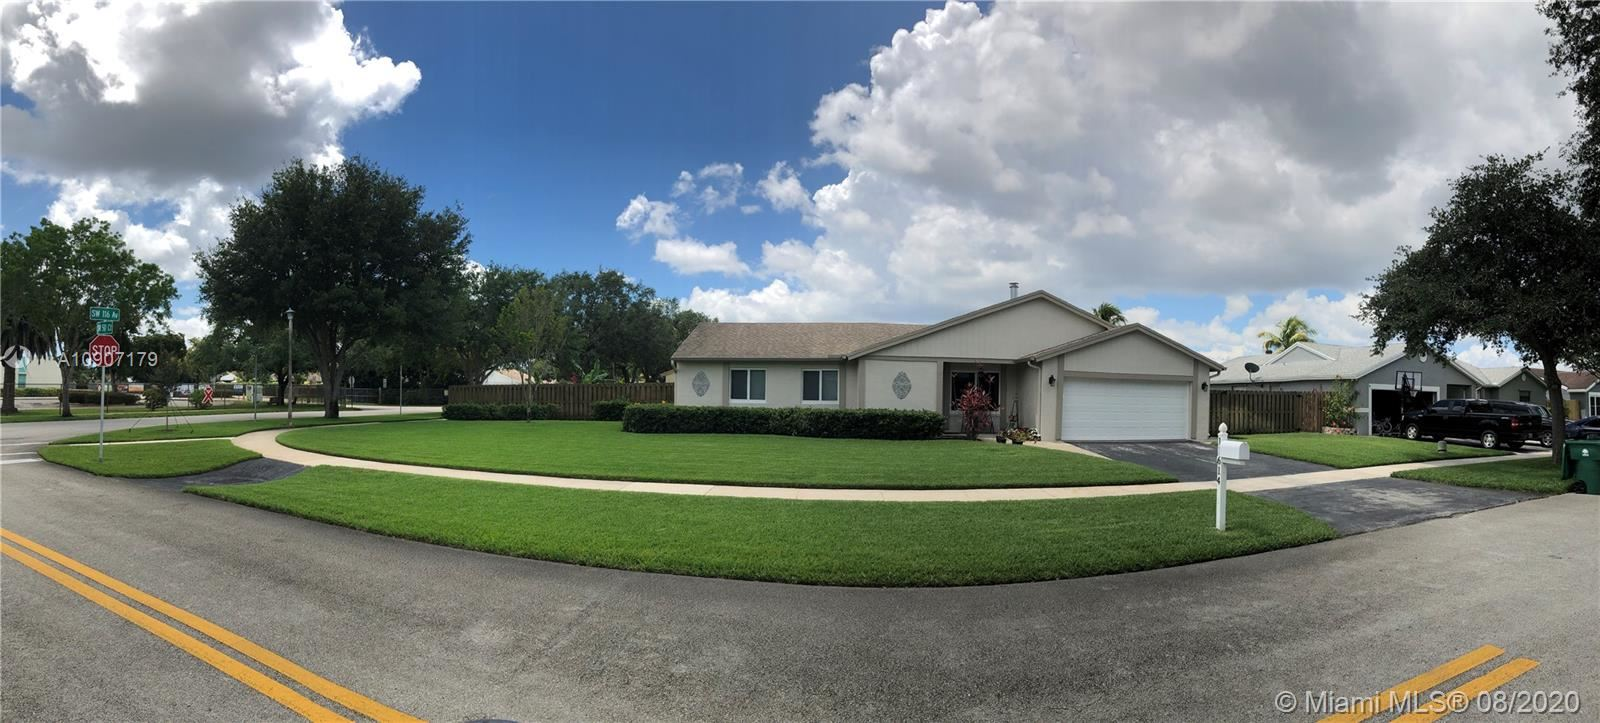 11614 SW 50th Ct, Cooper City, FL 33330 - #: A10907179